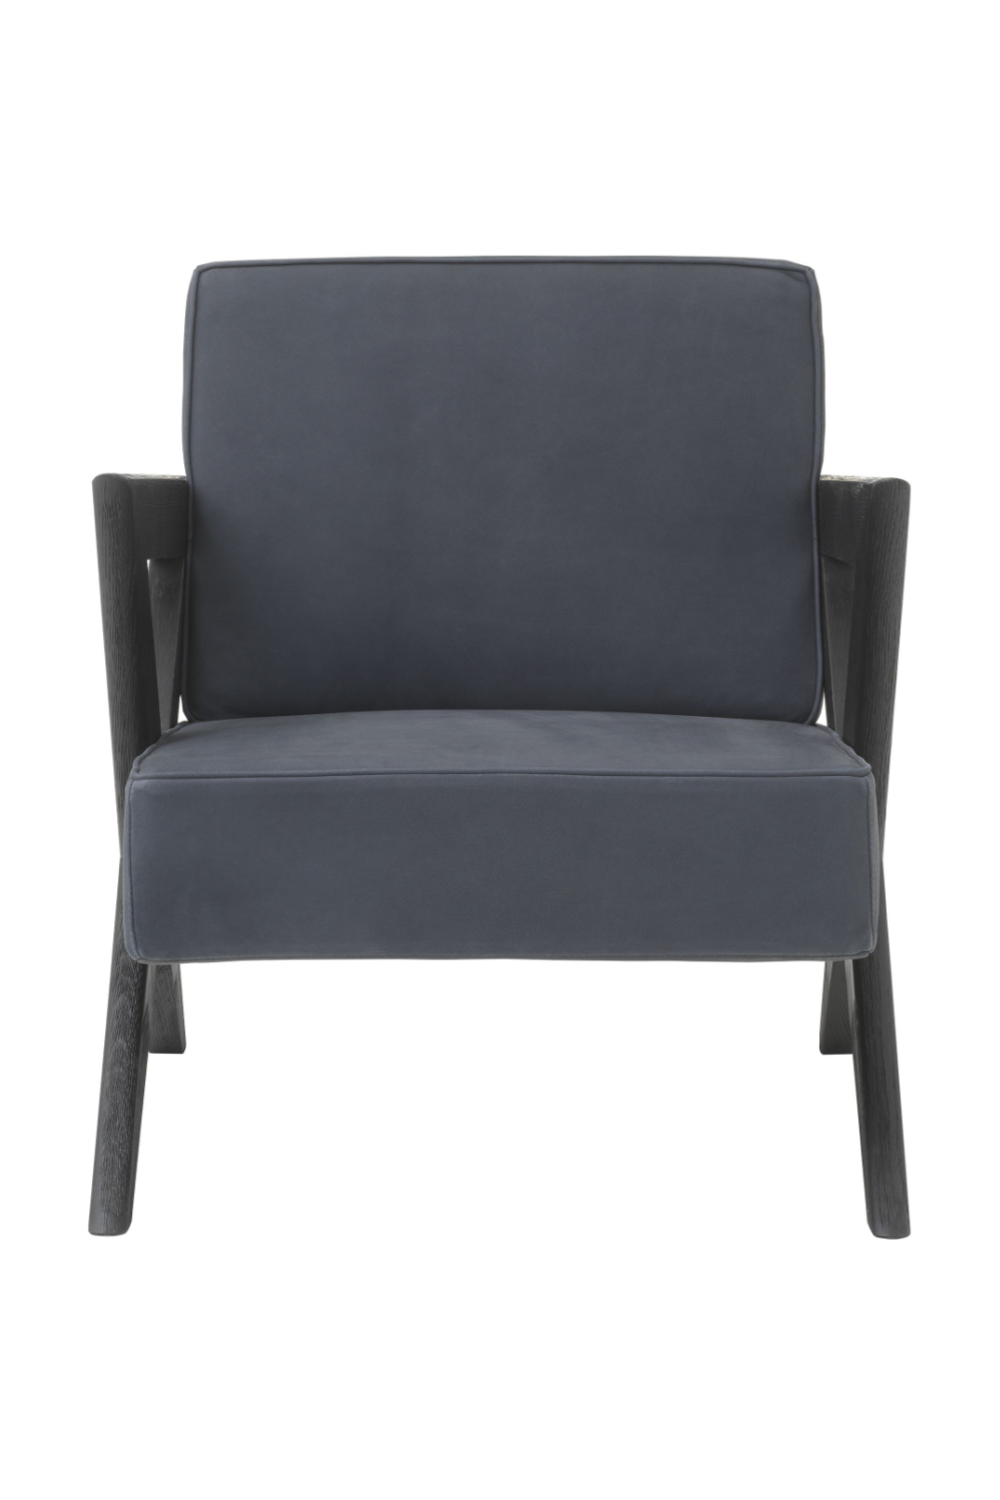 Blue Black Oak Chair | Eichholtz Felippe